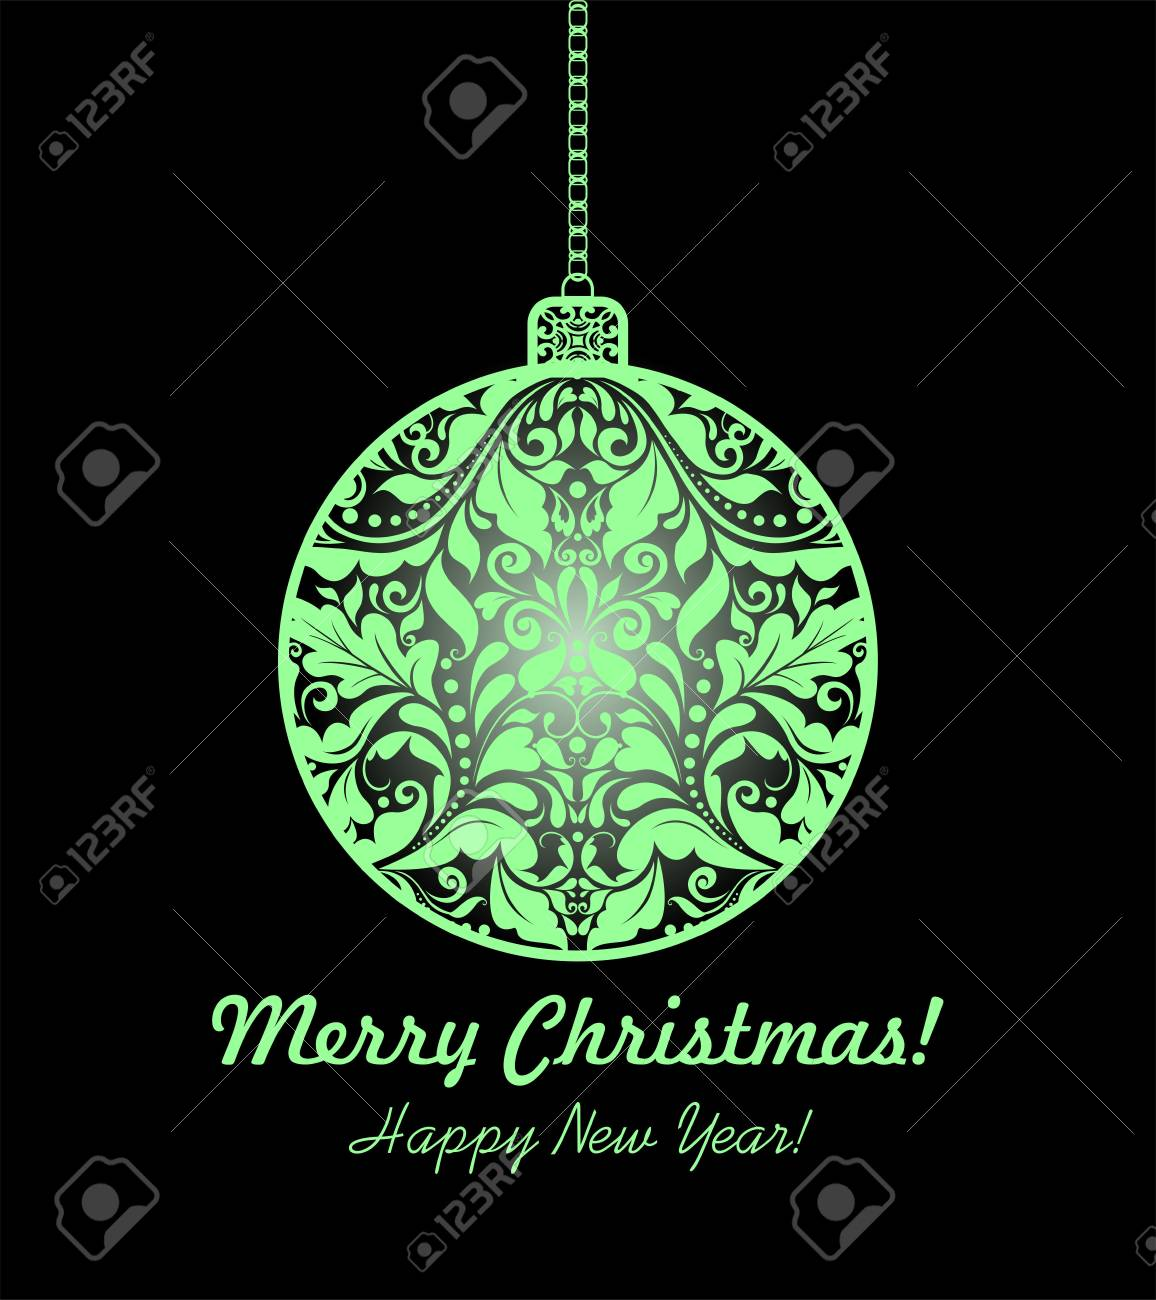 Magic Christmas Card With Hanging Floral Ball Royalty Free Cliparts